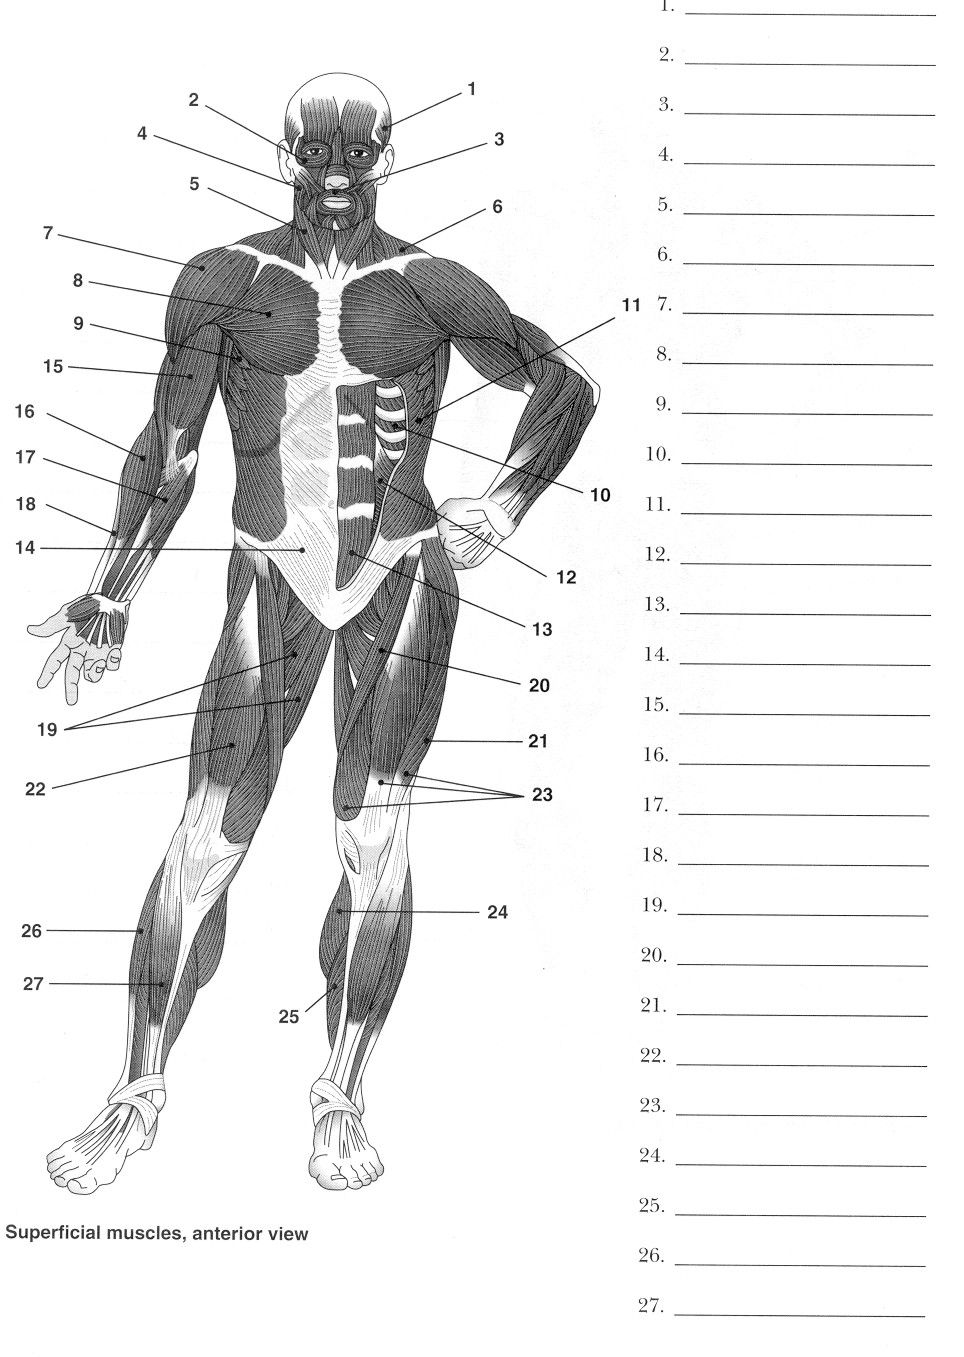 worksheet Human Anatomy And Physiology Worksheets 1000 images about worksheets and quizzes on pinterest bones of the head human body red cross